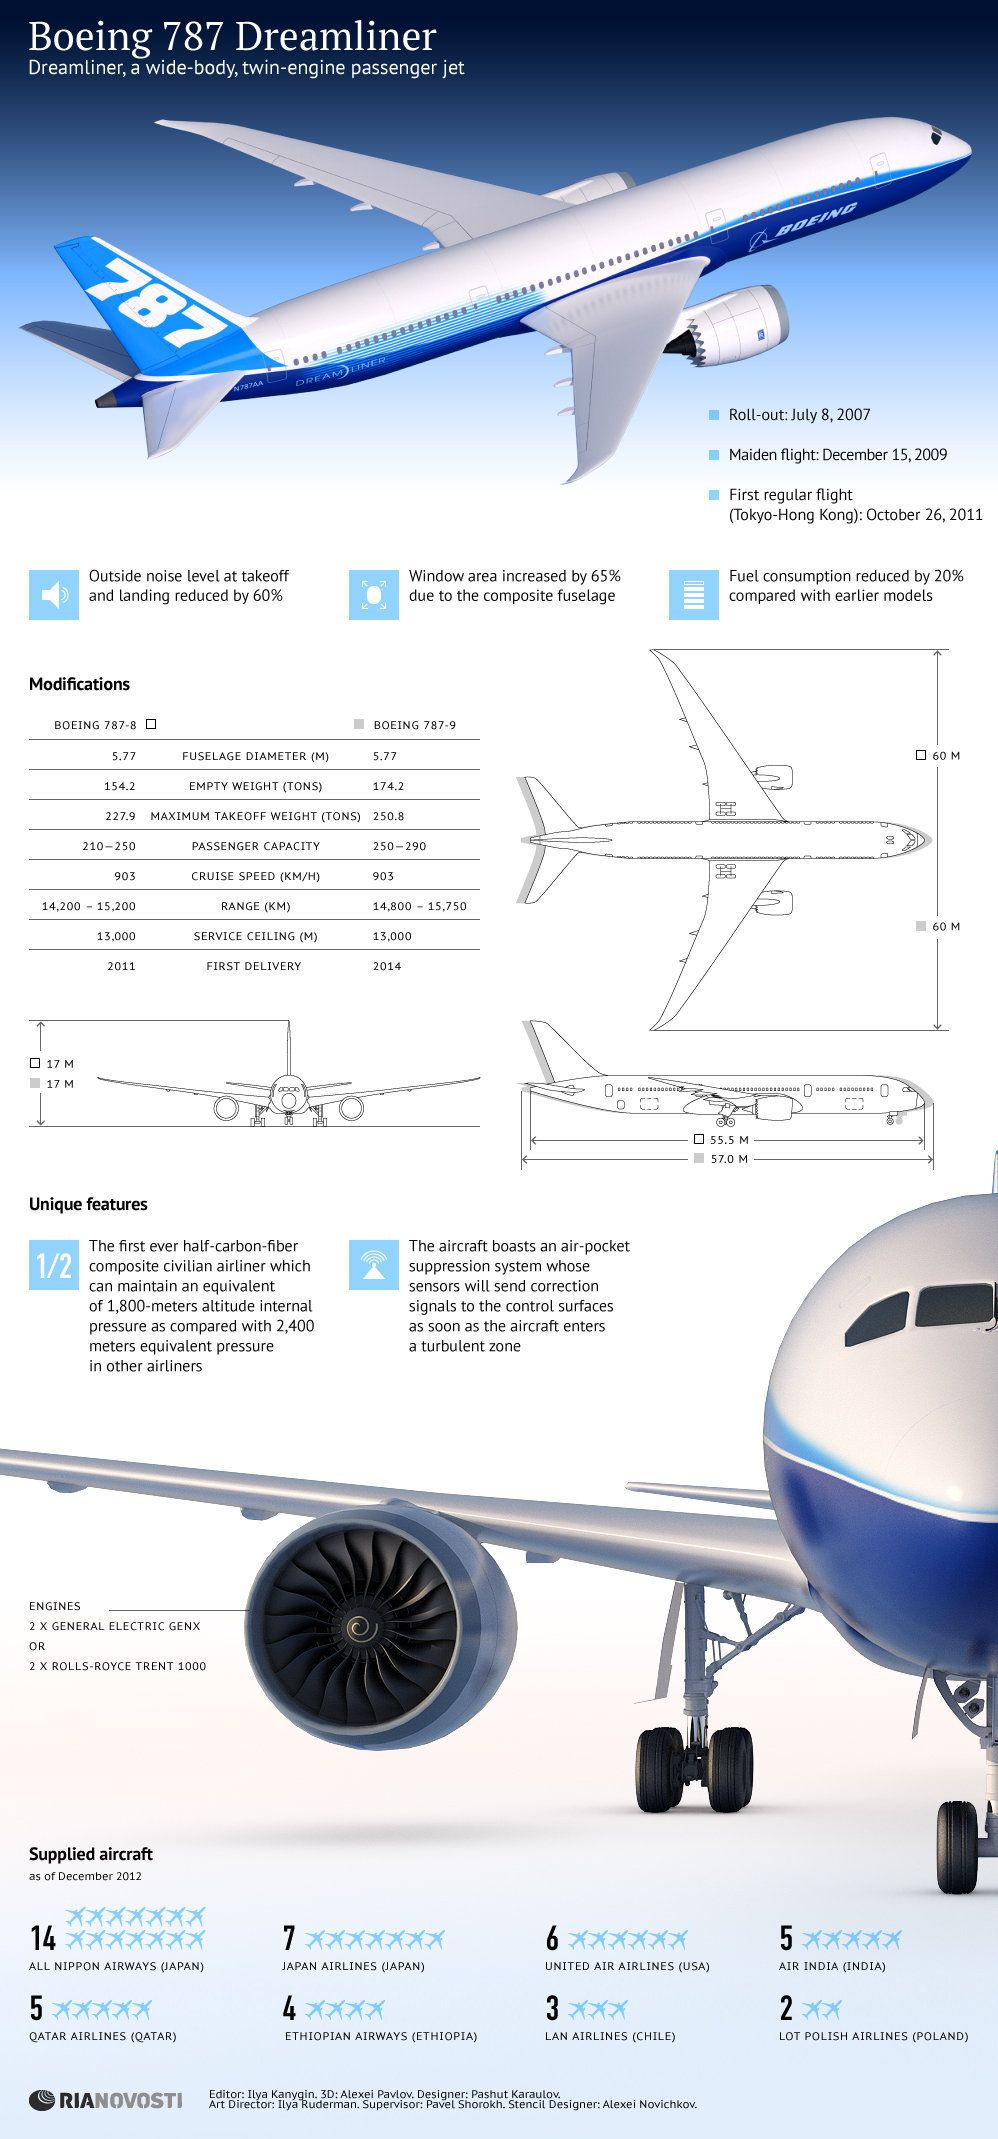 339 best Boeing 787 images on Pinterest | Airplane, Airplanes and ...